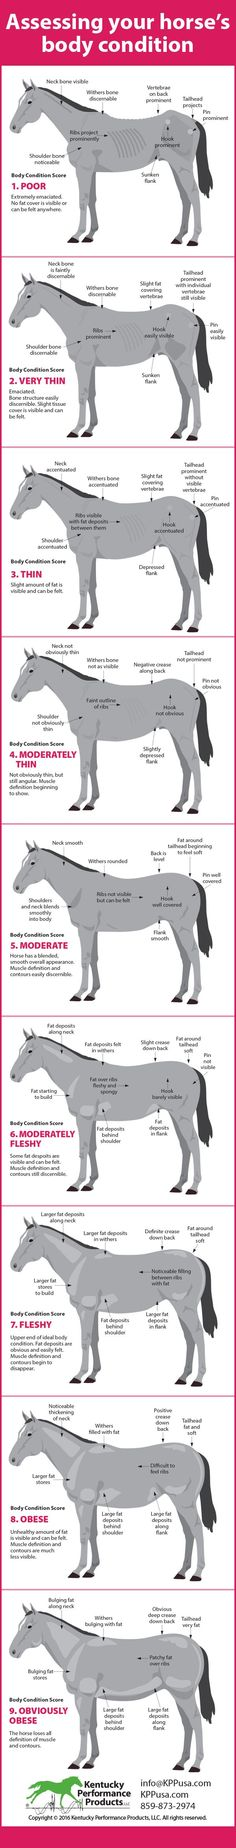 What is your horse's body condition score? Body condition scoring is based on a 9-point scale, with one being poor and 9 being obviously obese. Where your horse stores fat is an indicator of body condition. When evaluating your horse's condition there are some key areas to pay attention to. Read more here: http://kppusa.com/tips-and-topics/evaluate-horses-weight/